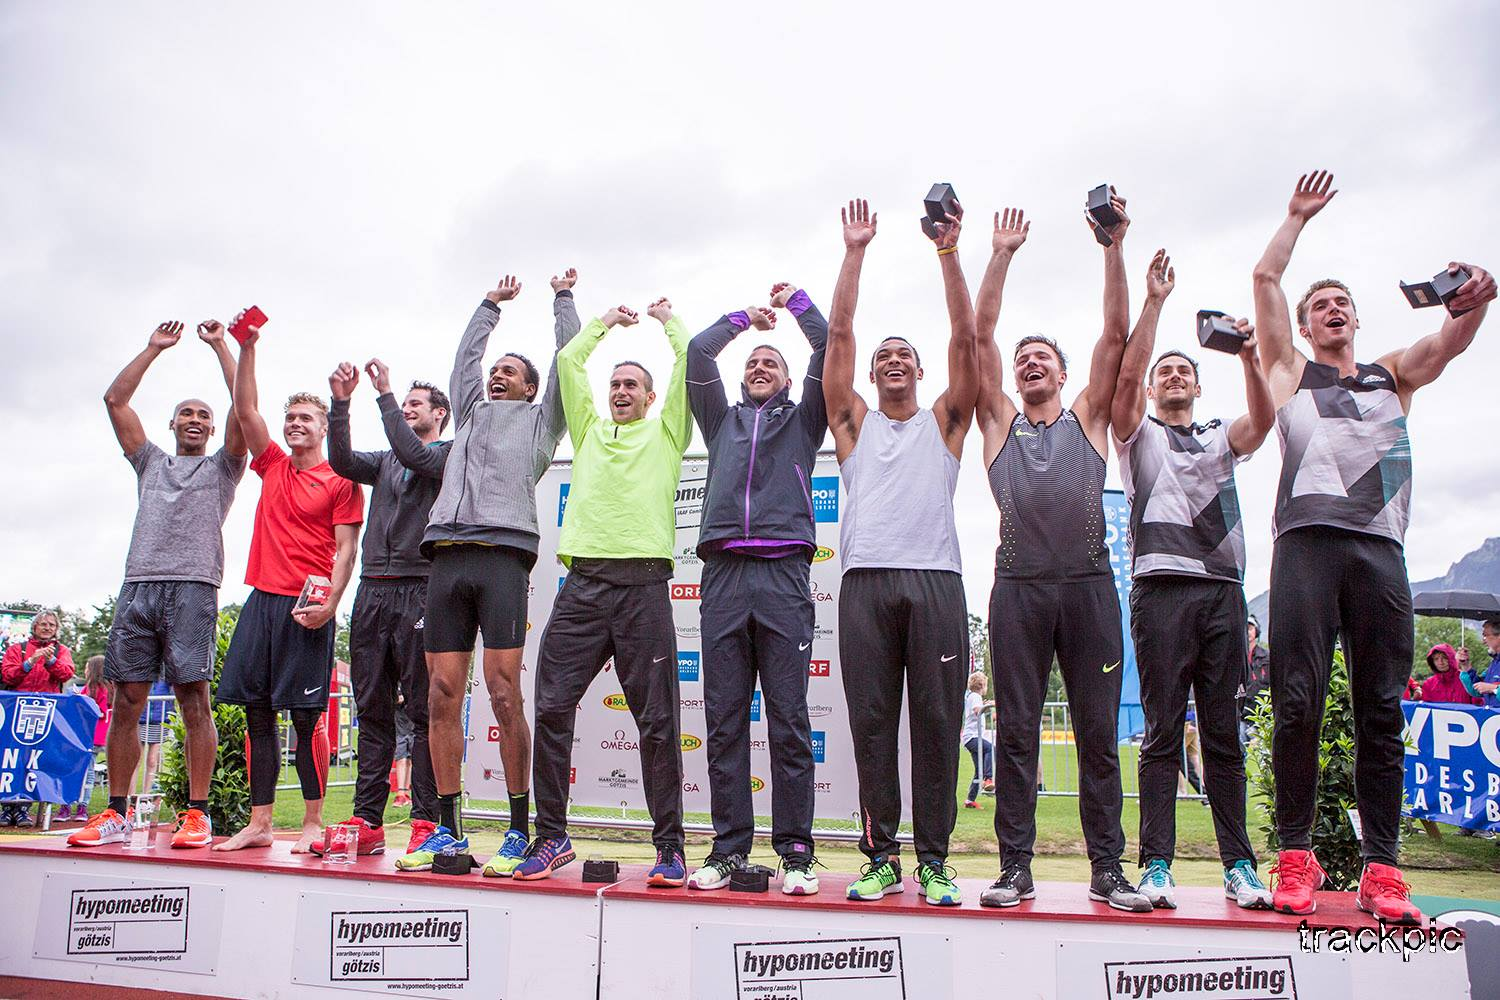 Hypomeeting Götzis 2016 Decathlon Podium - Photo by Olavi Kaljunen / trackpic.net